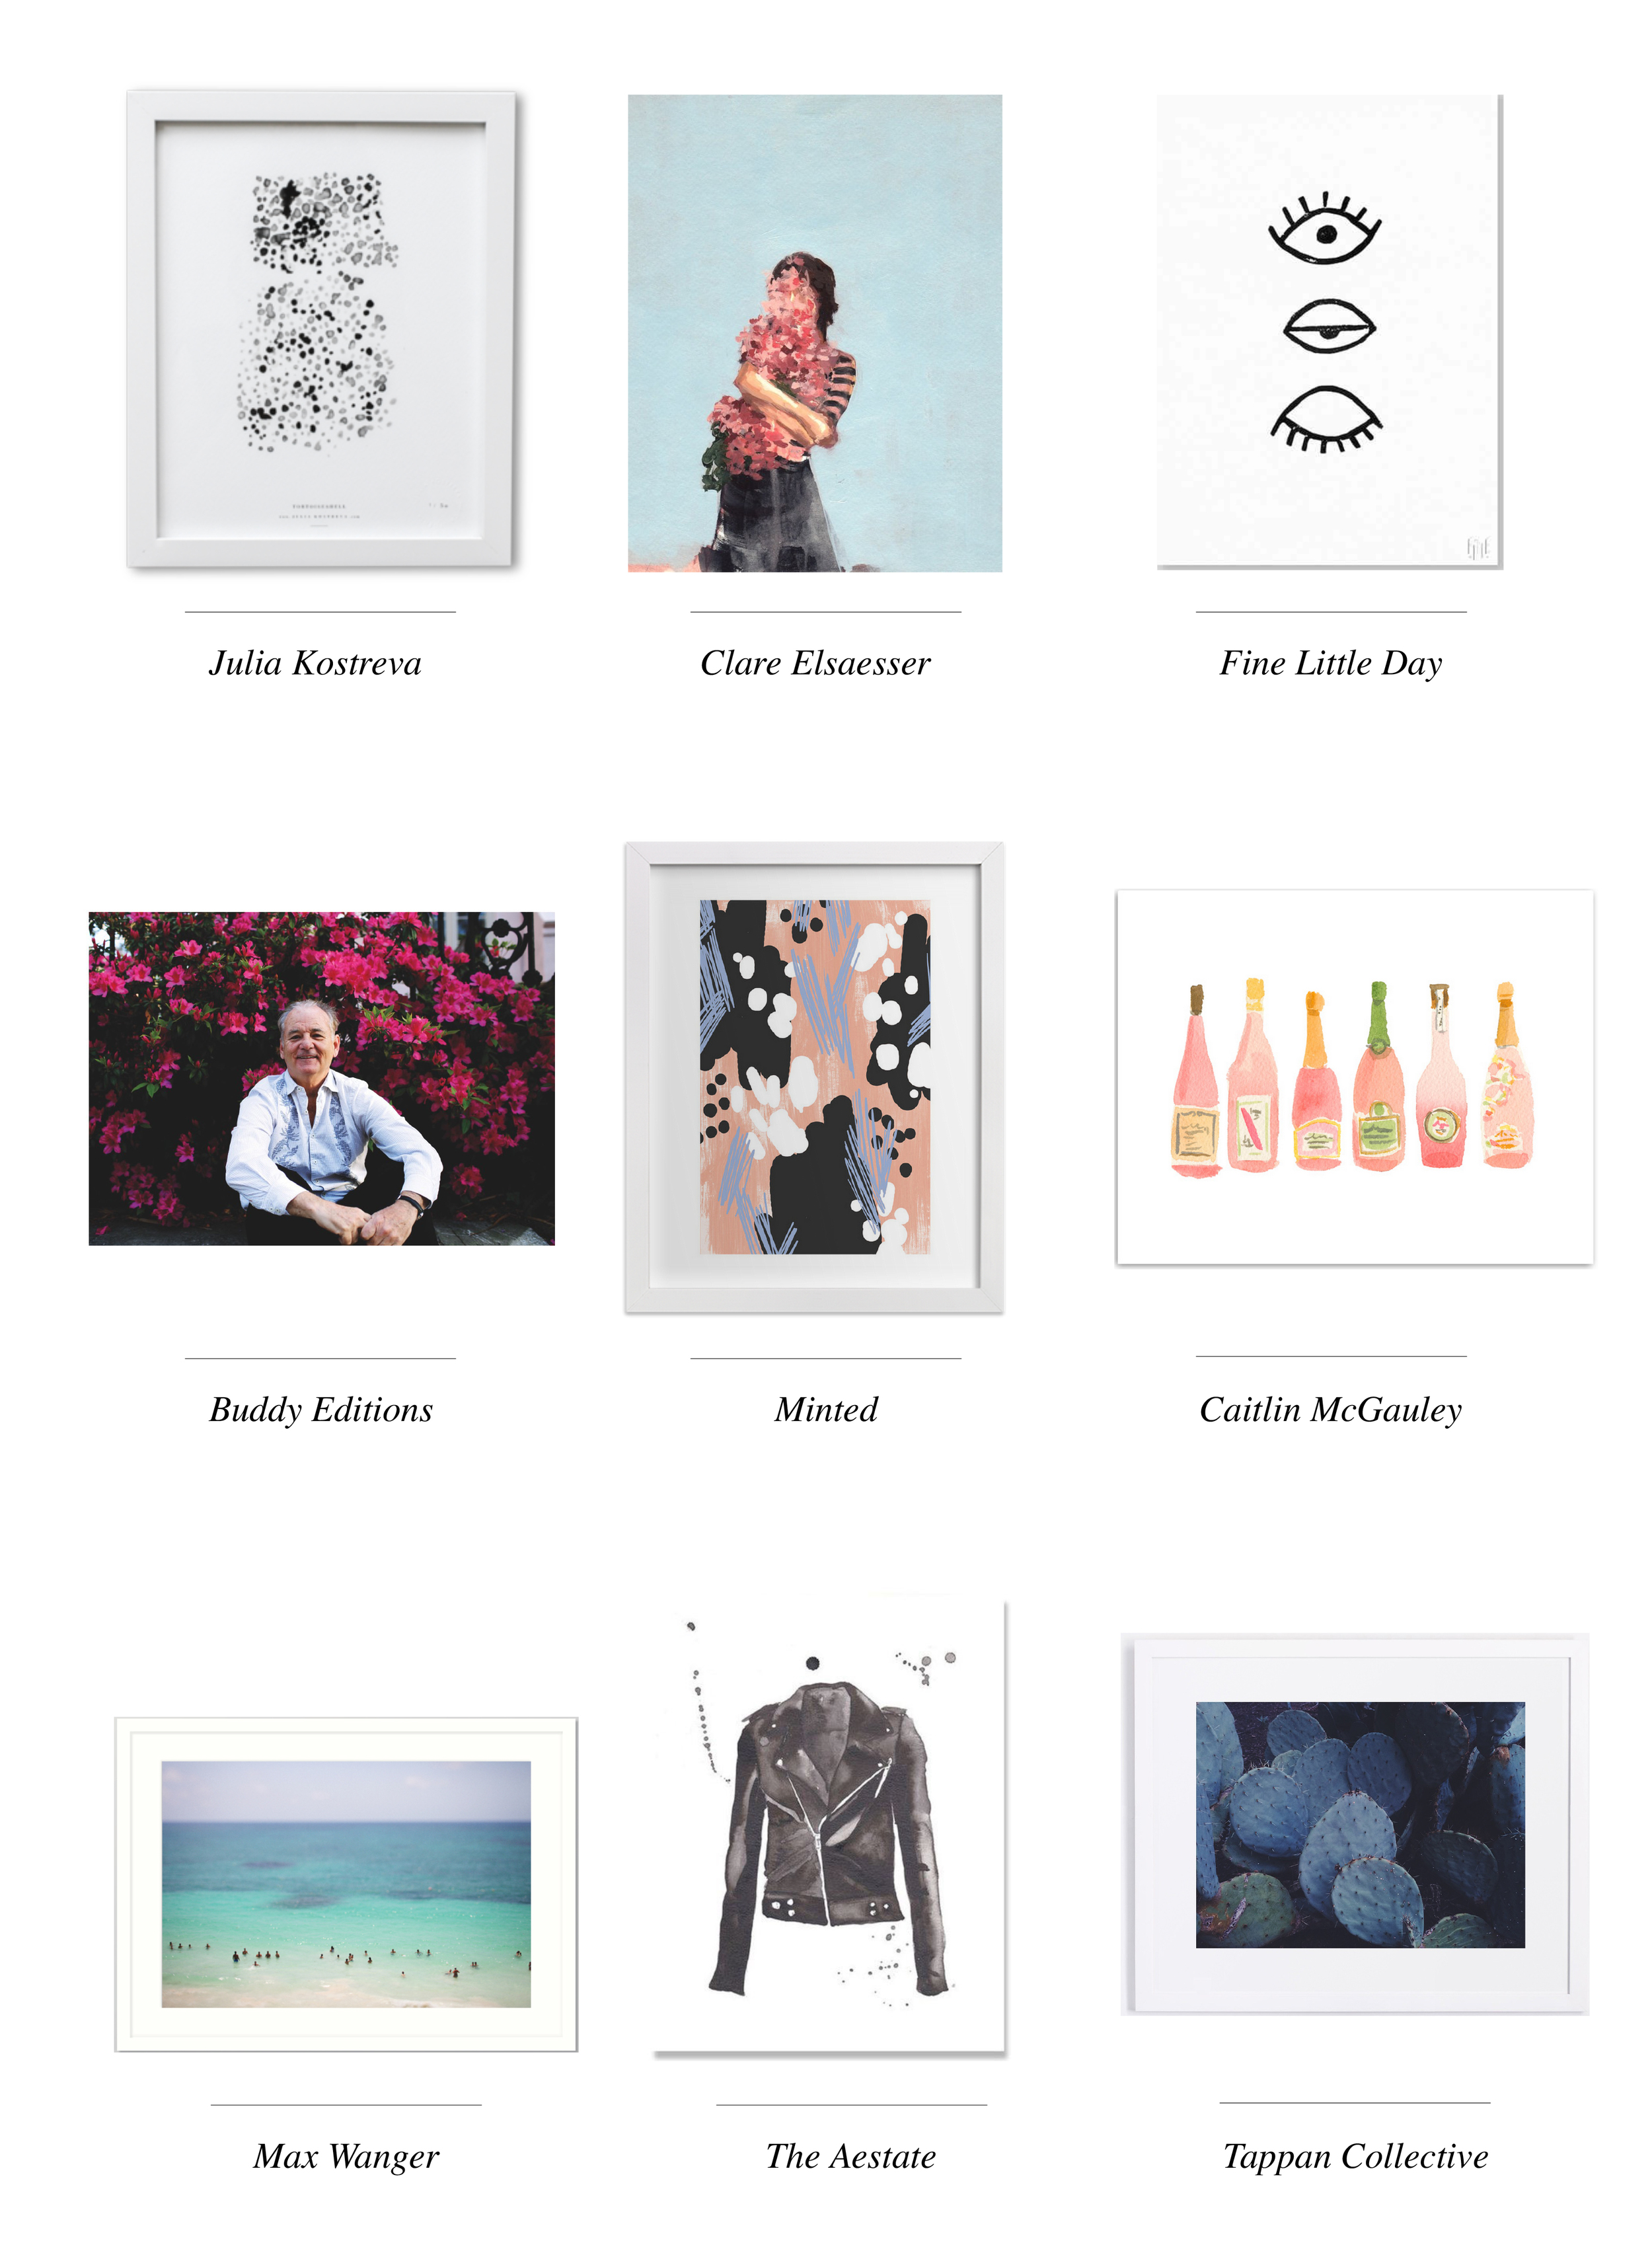 Julia Kostreva  //  Clare Elsaesser  //  Fine Little Day  //  Buddy Editions  //  Minted  //  Caitlin McGauley  //  Max Wanger  //  The Aestate  //  Tappan Collective